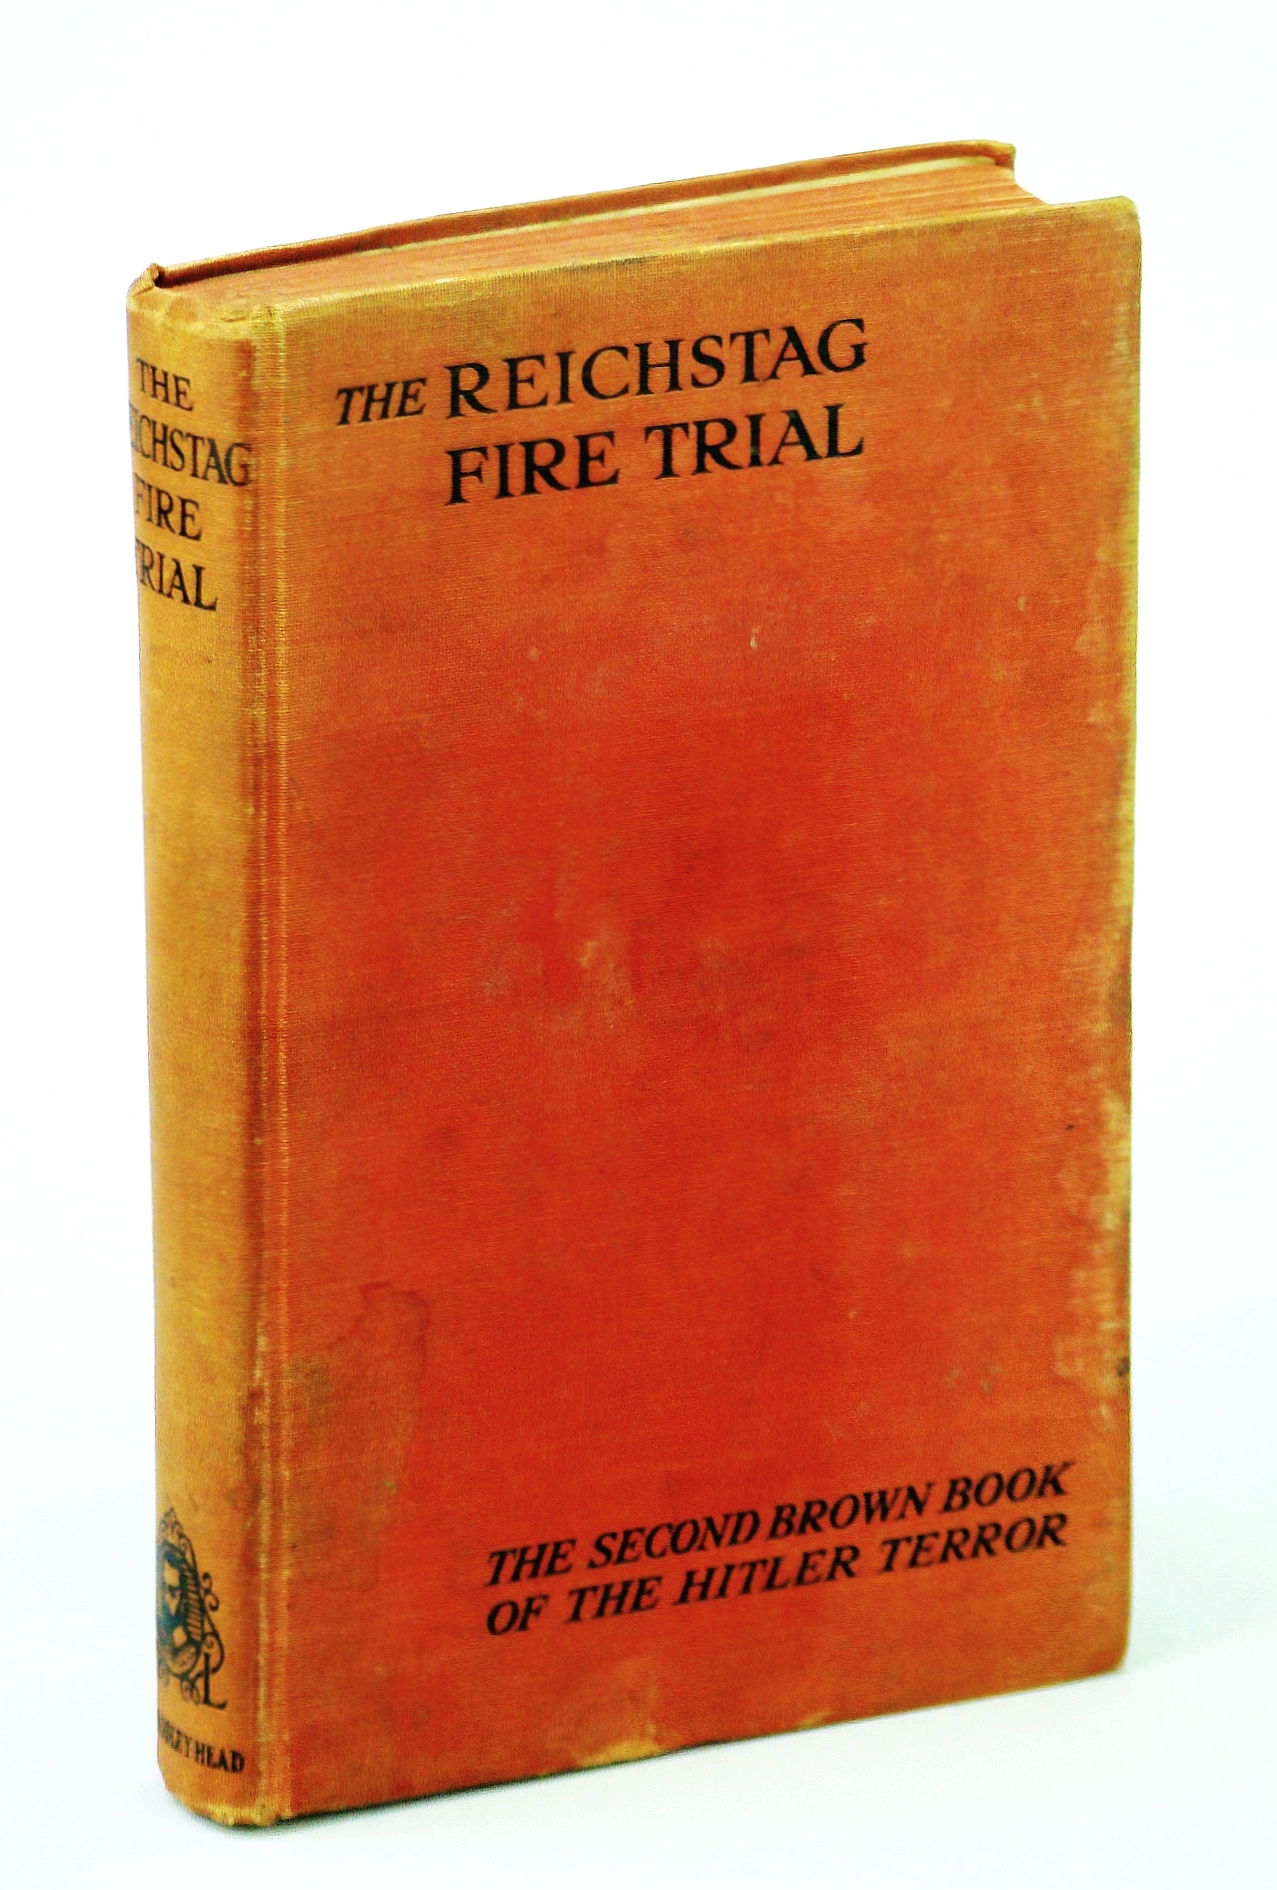 Image for The Reichstag Fire Trial: The Second Brown Book of the Hitler Terror